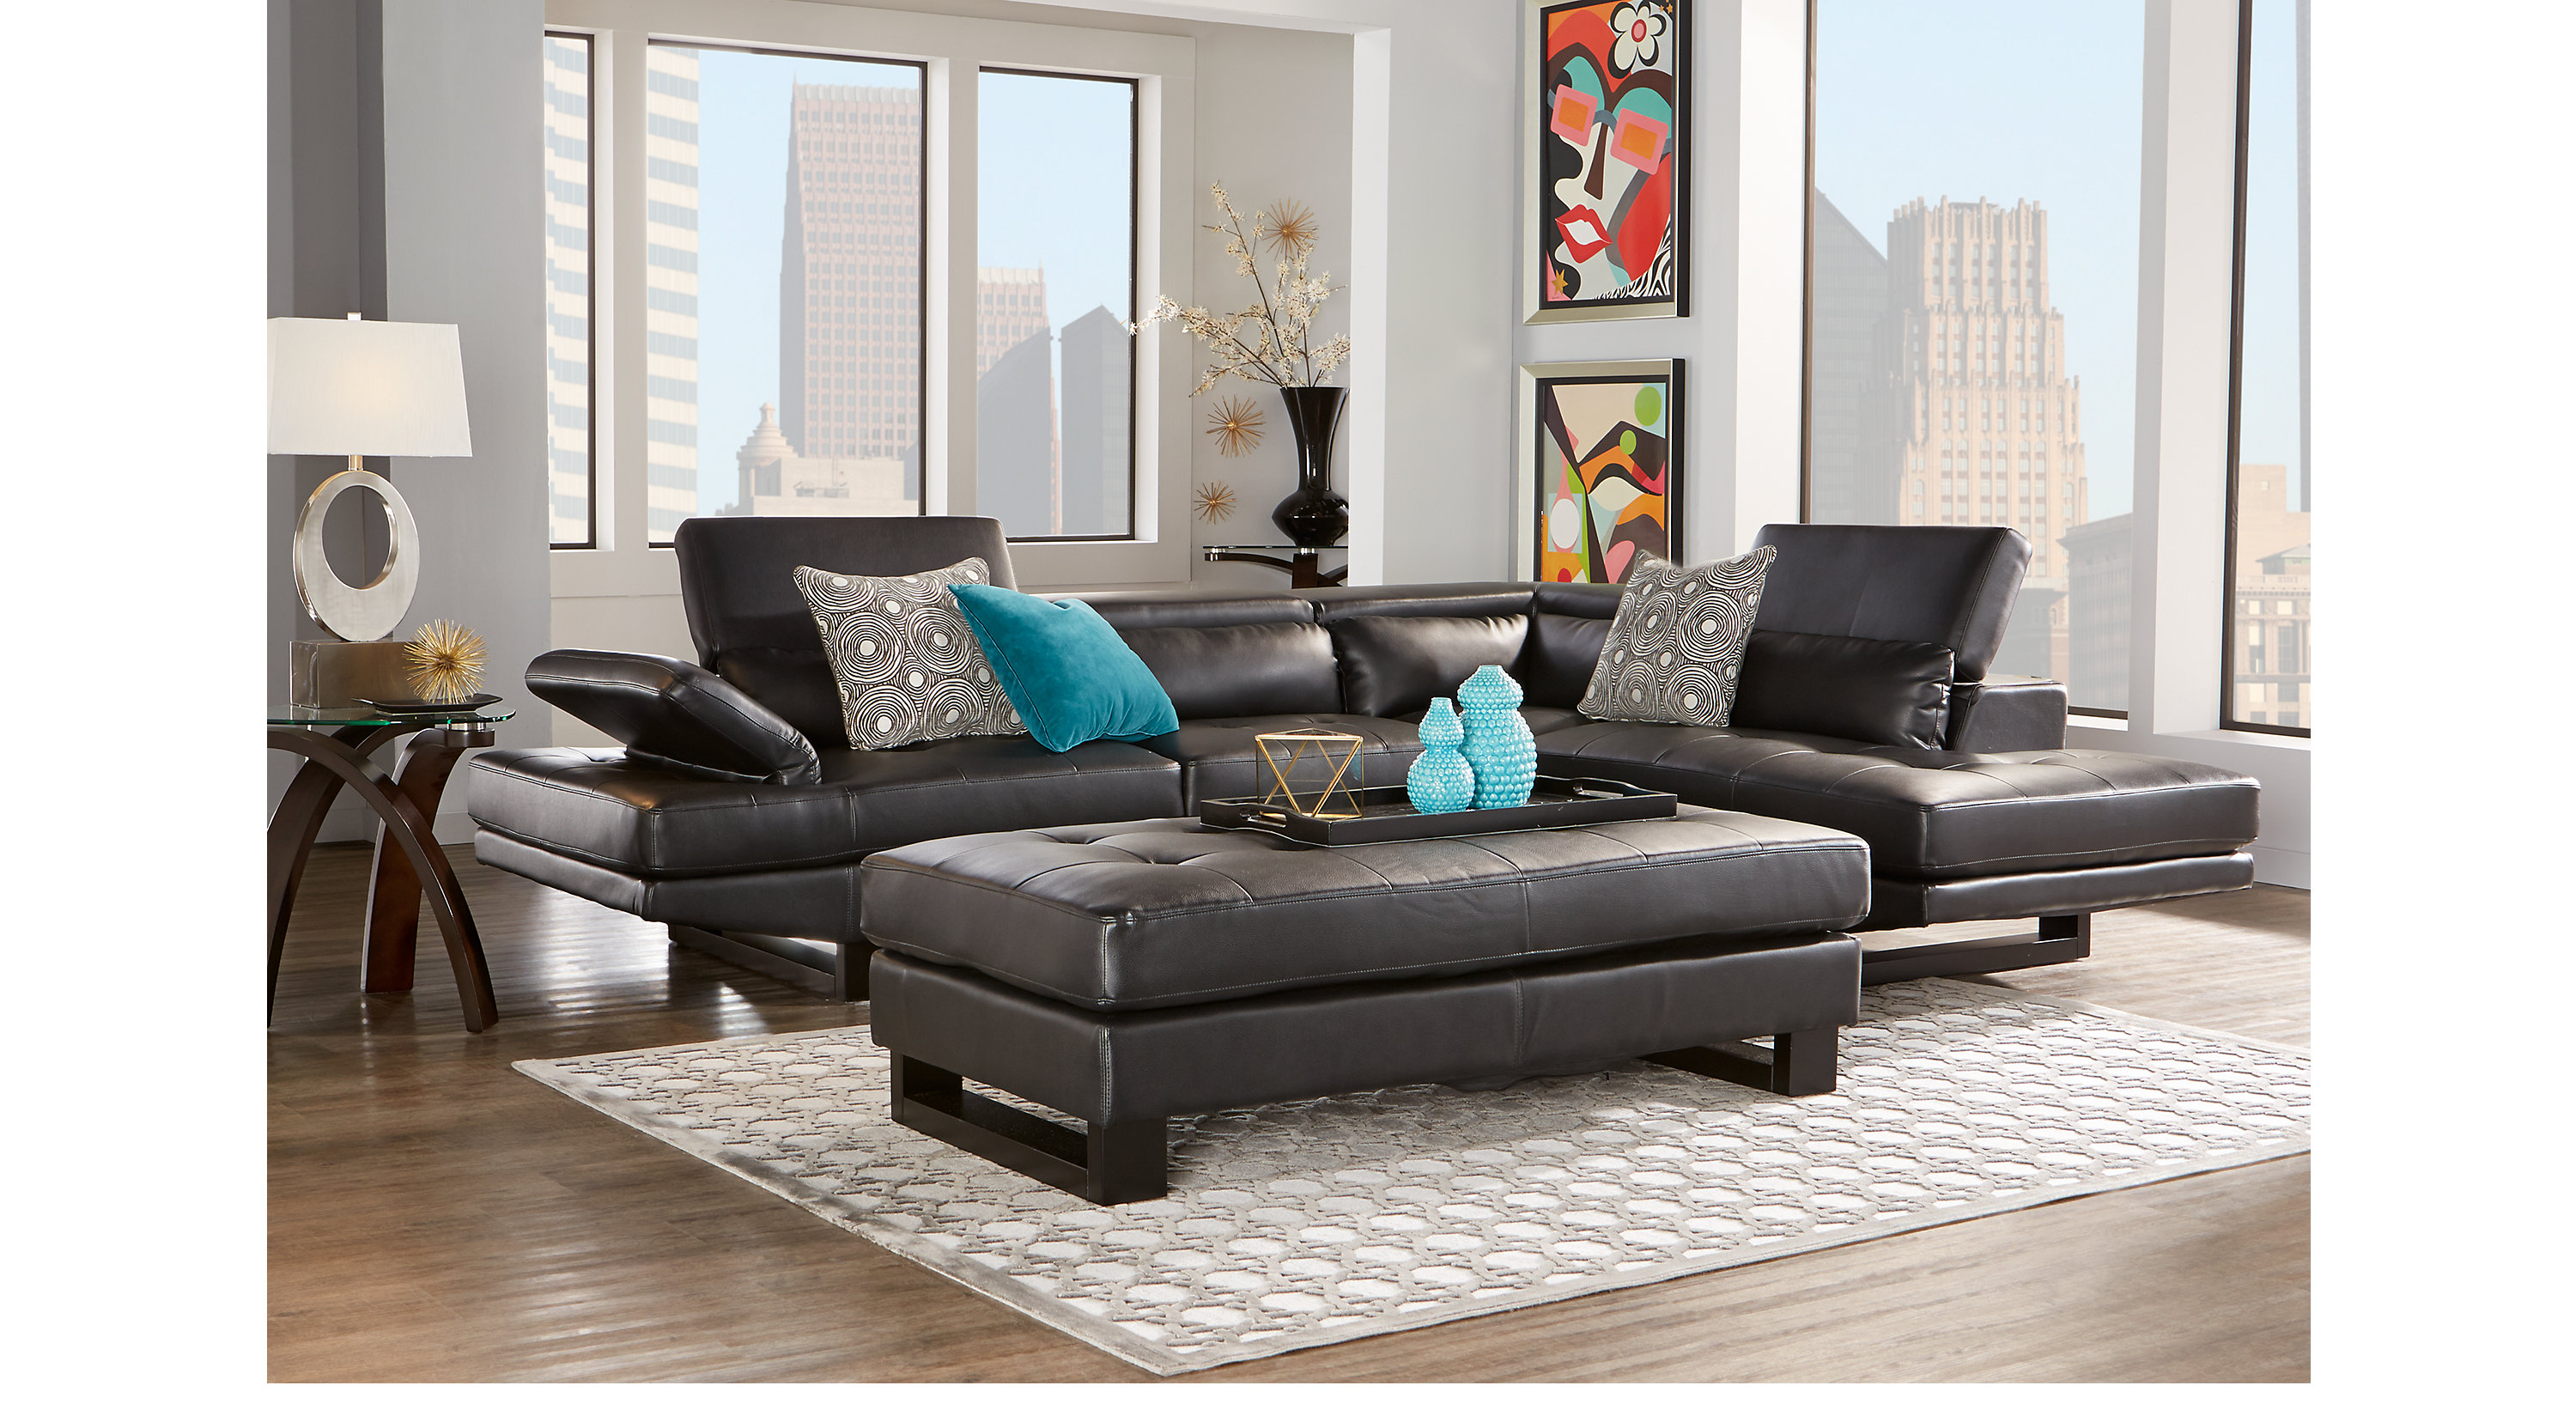 Shiloh Black 3 Pc Sectional Living Room